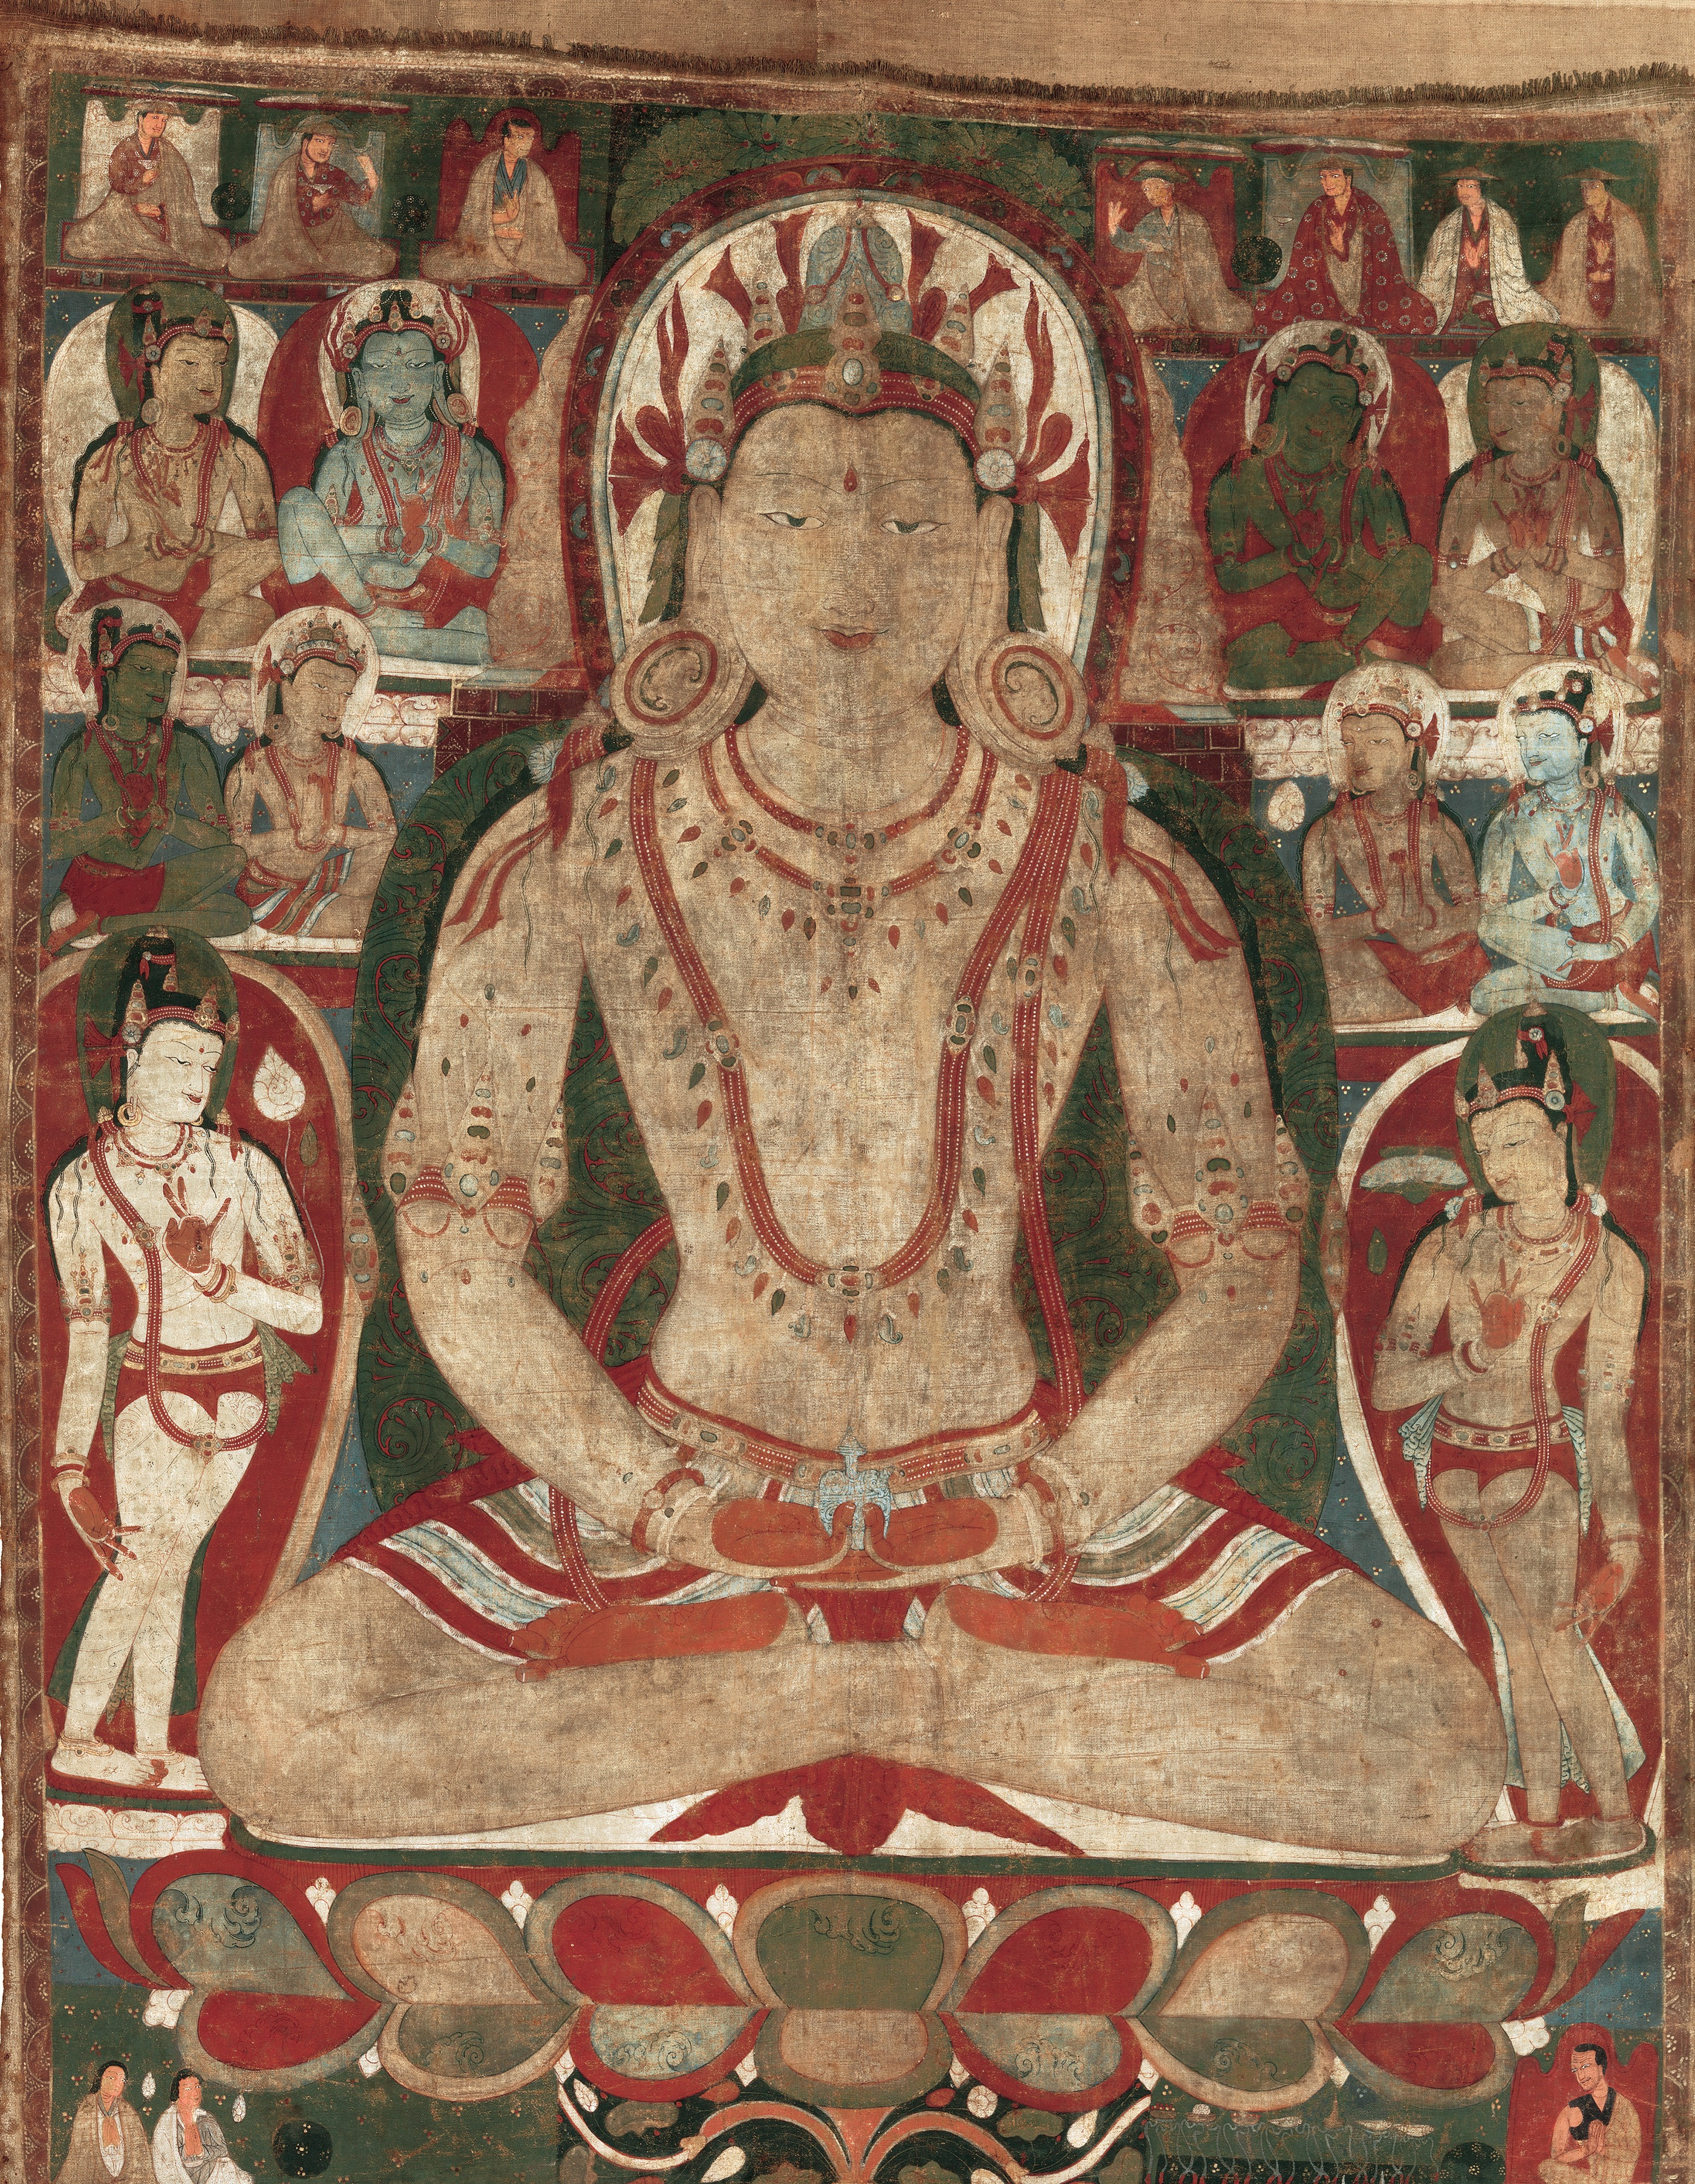 The Buddha Amitayus Attended by Bodhisattvas (Met Museum Collection)